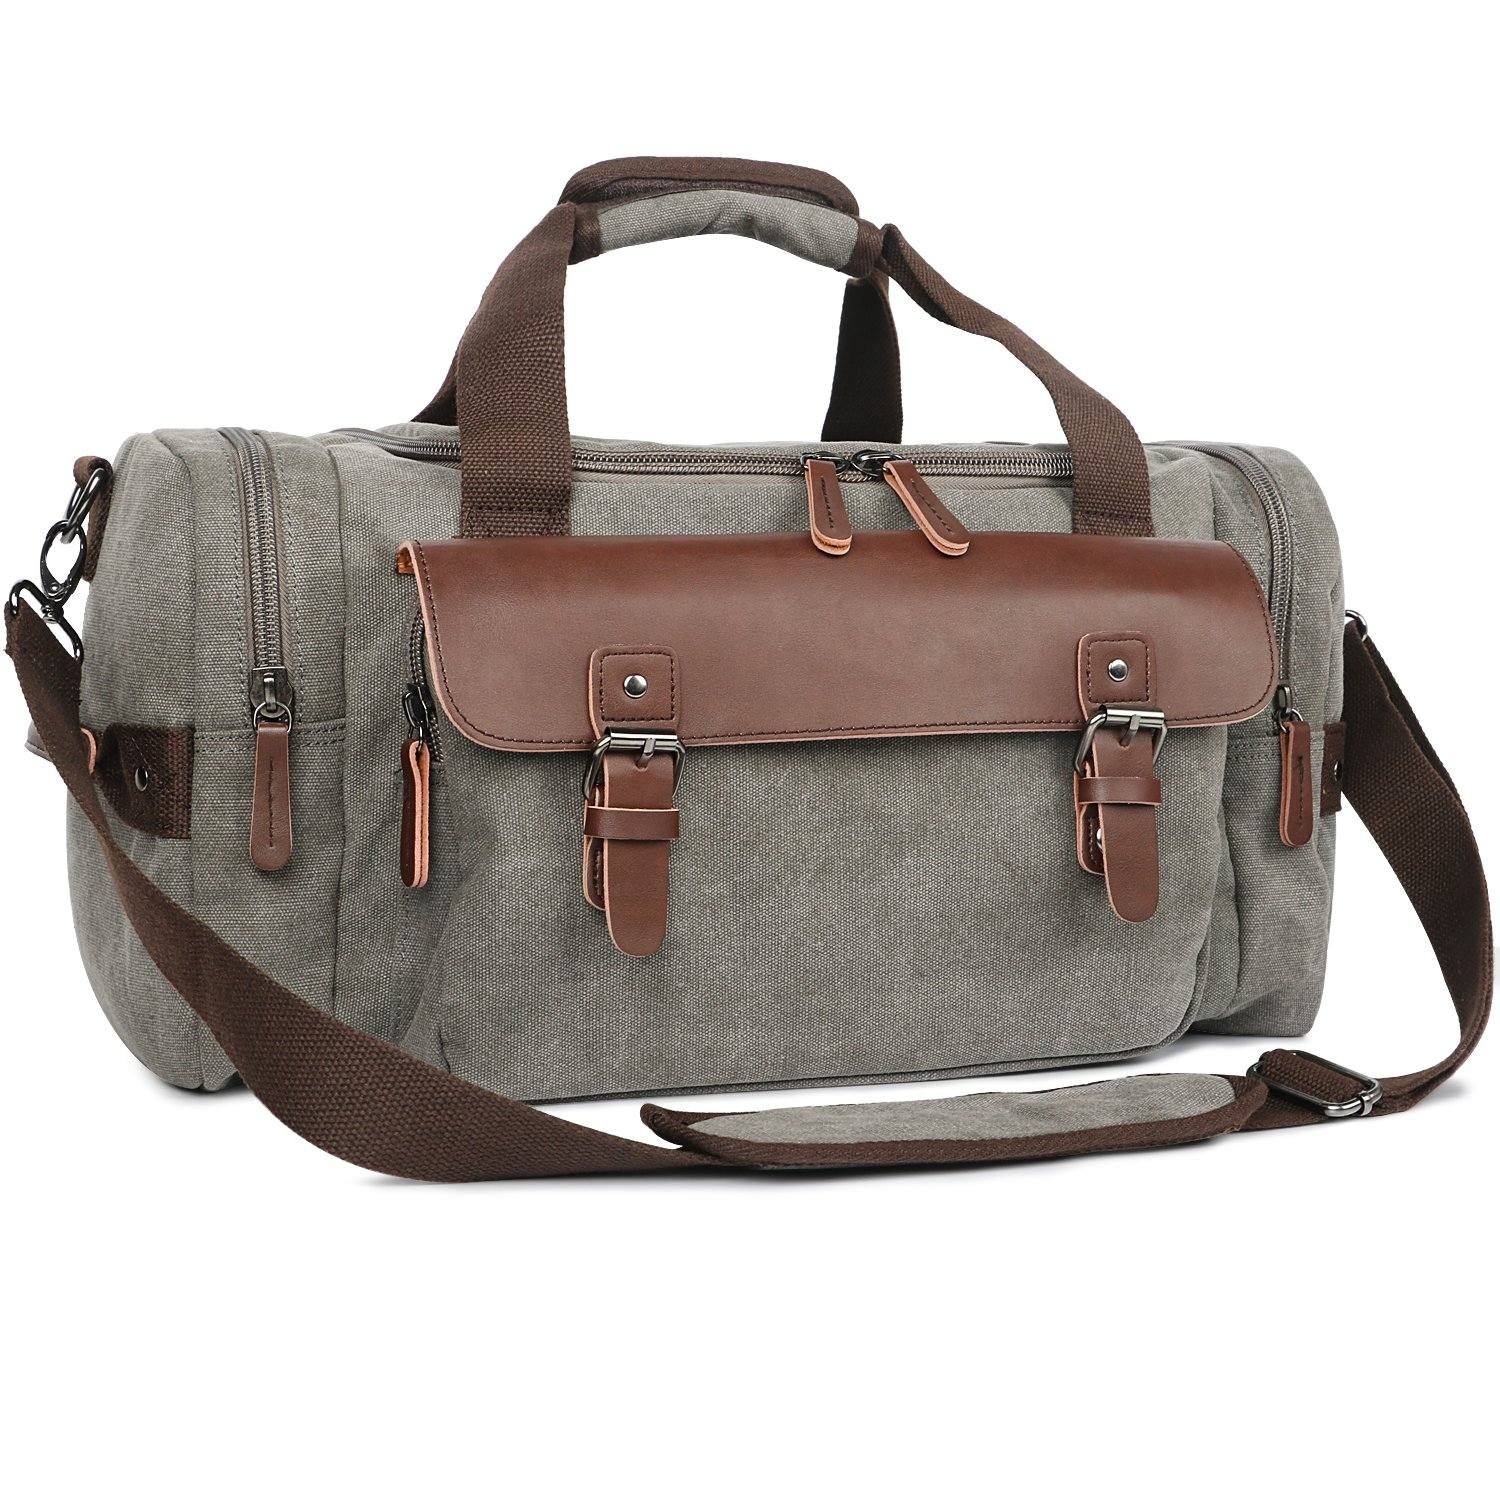 Oflamn Duffle Weekender Bag for Men Pu Leather Canvas Travel Overnight Carry on Bag with Multi-pockets (Grey)